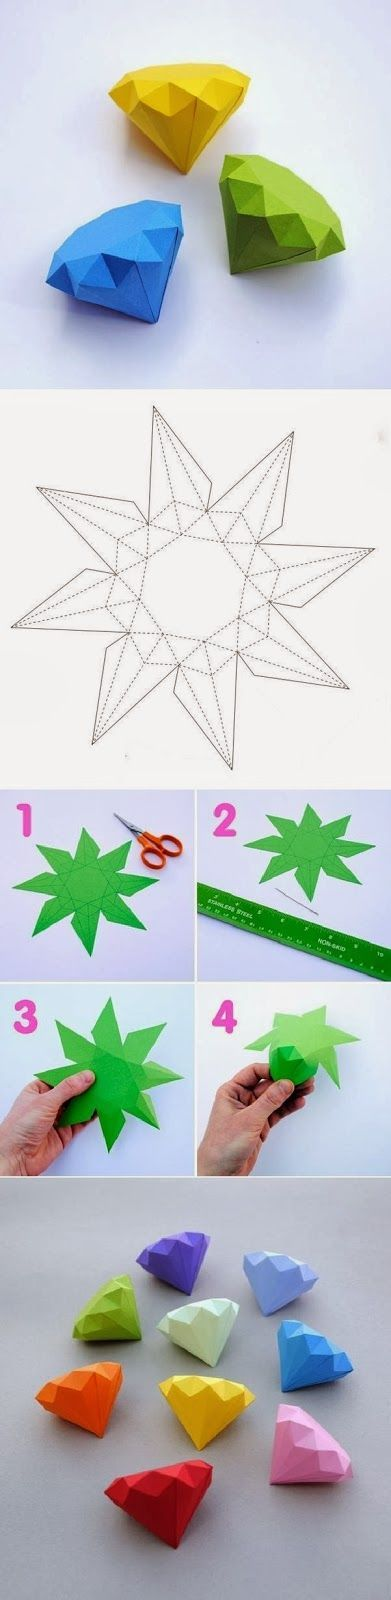 DIY : Paper Diamonds | DIY & Crafts Tutorials: